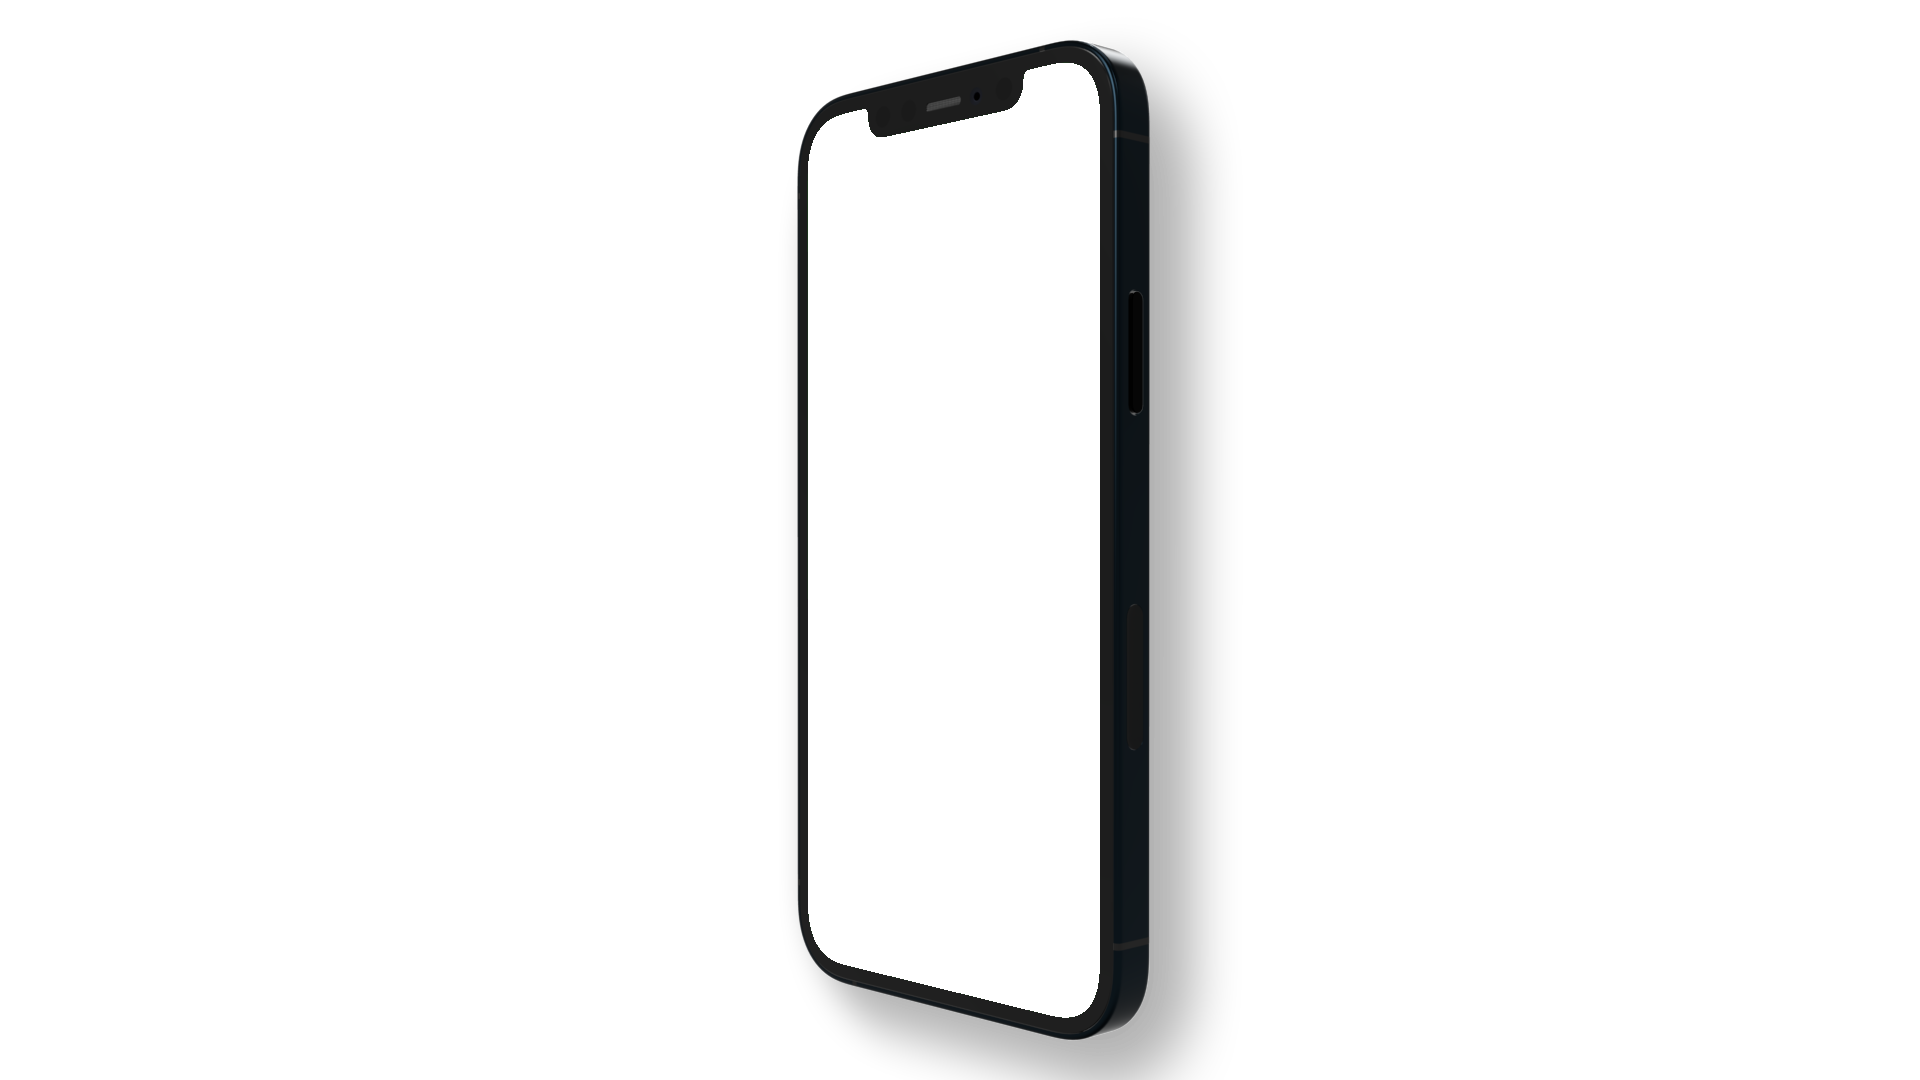 An iPhone 12 PNG seen from the side in upright position